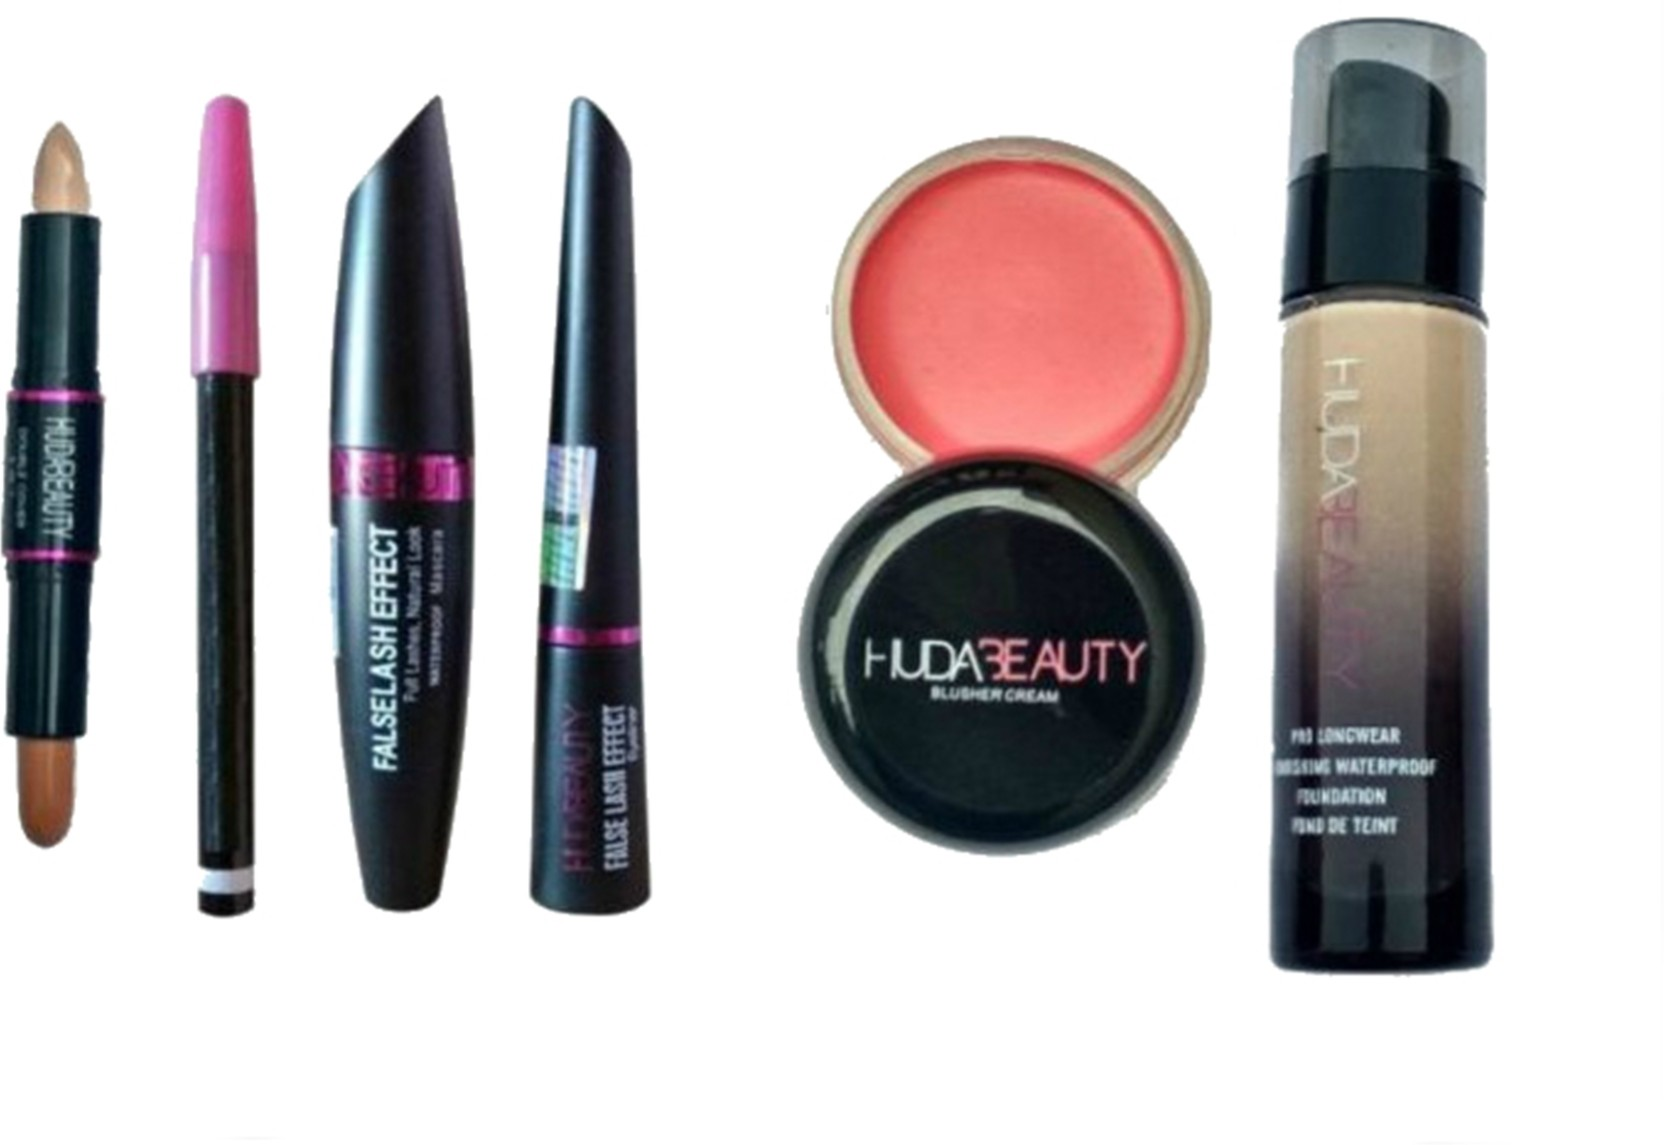 1a26a0ebc8f Huda Beauty COMBO OF BLUSHER CREAM WITH LONG LASTING(24HRS) EYELINER,  MASCARA, EYEBROW PENCIL(FALSE LASH EFFECT) WITH DOUBLE COVER CONCEALER WITH  WATERPROOF ...